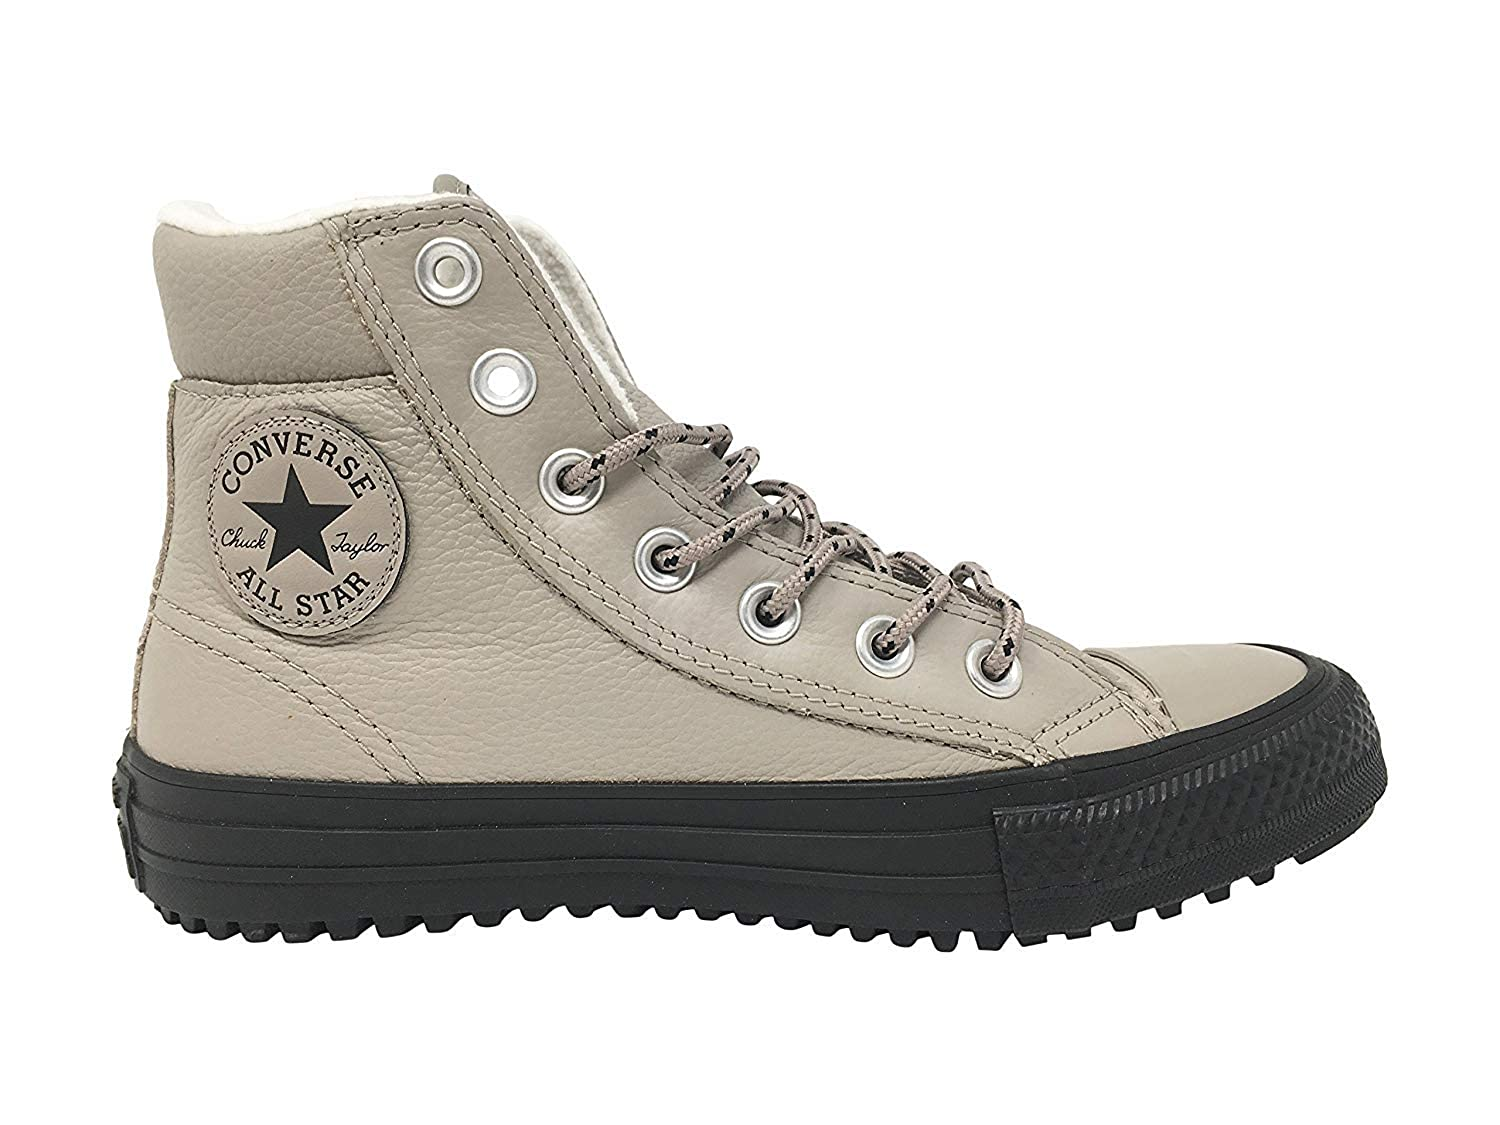 2converse all star boot